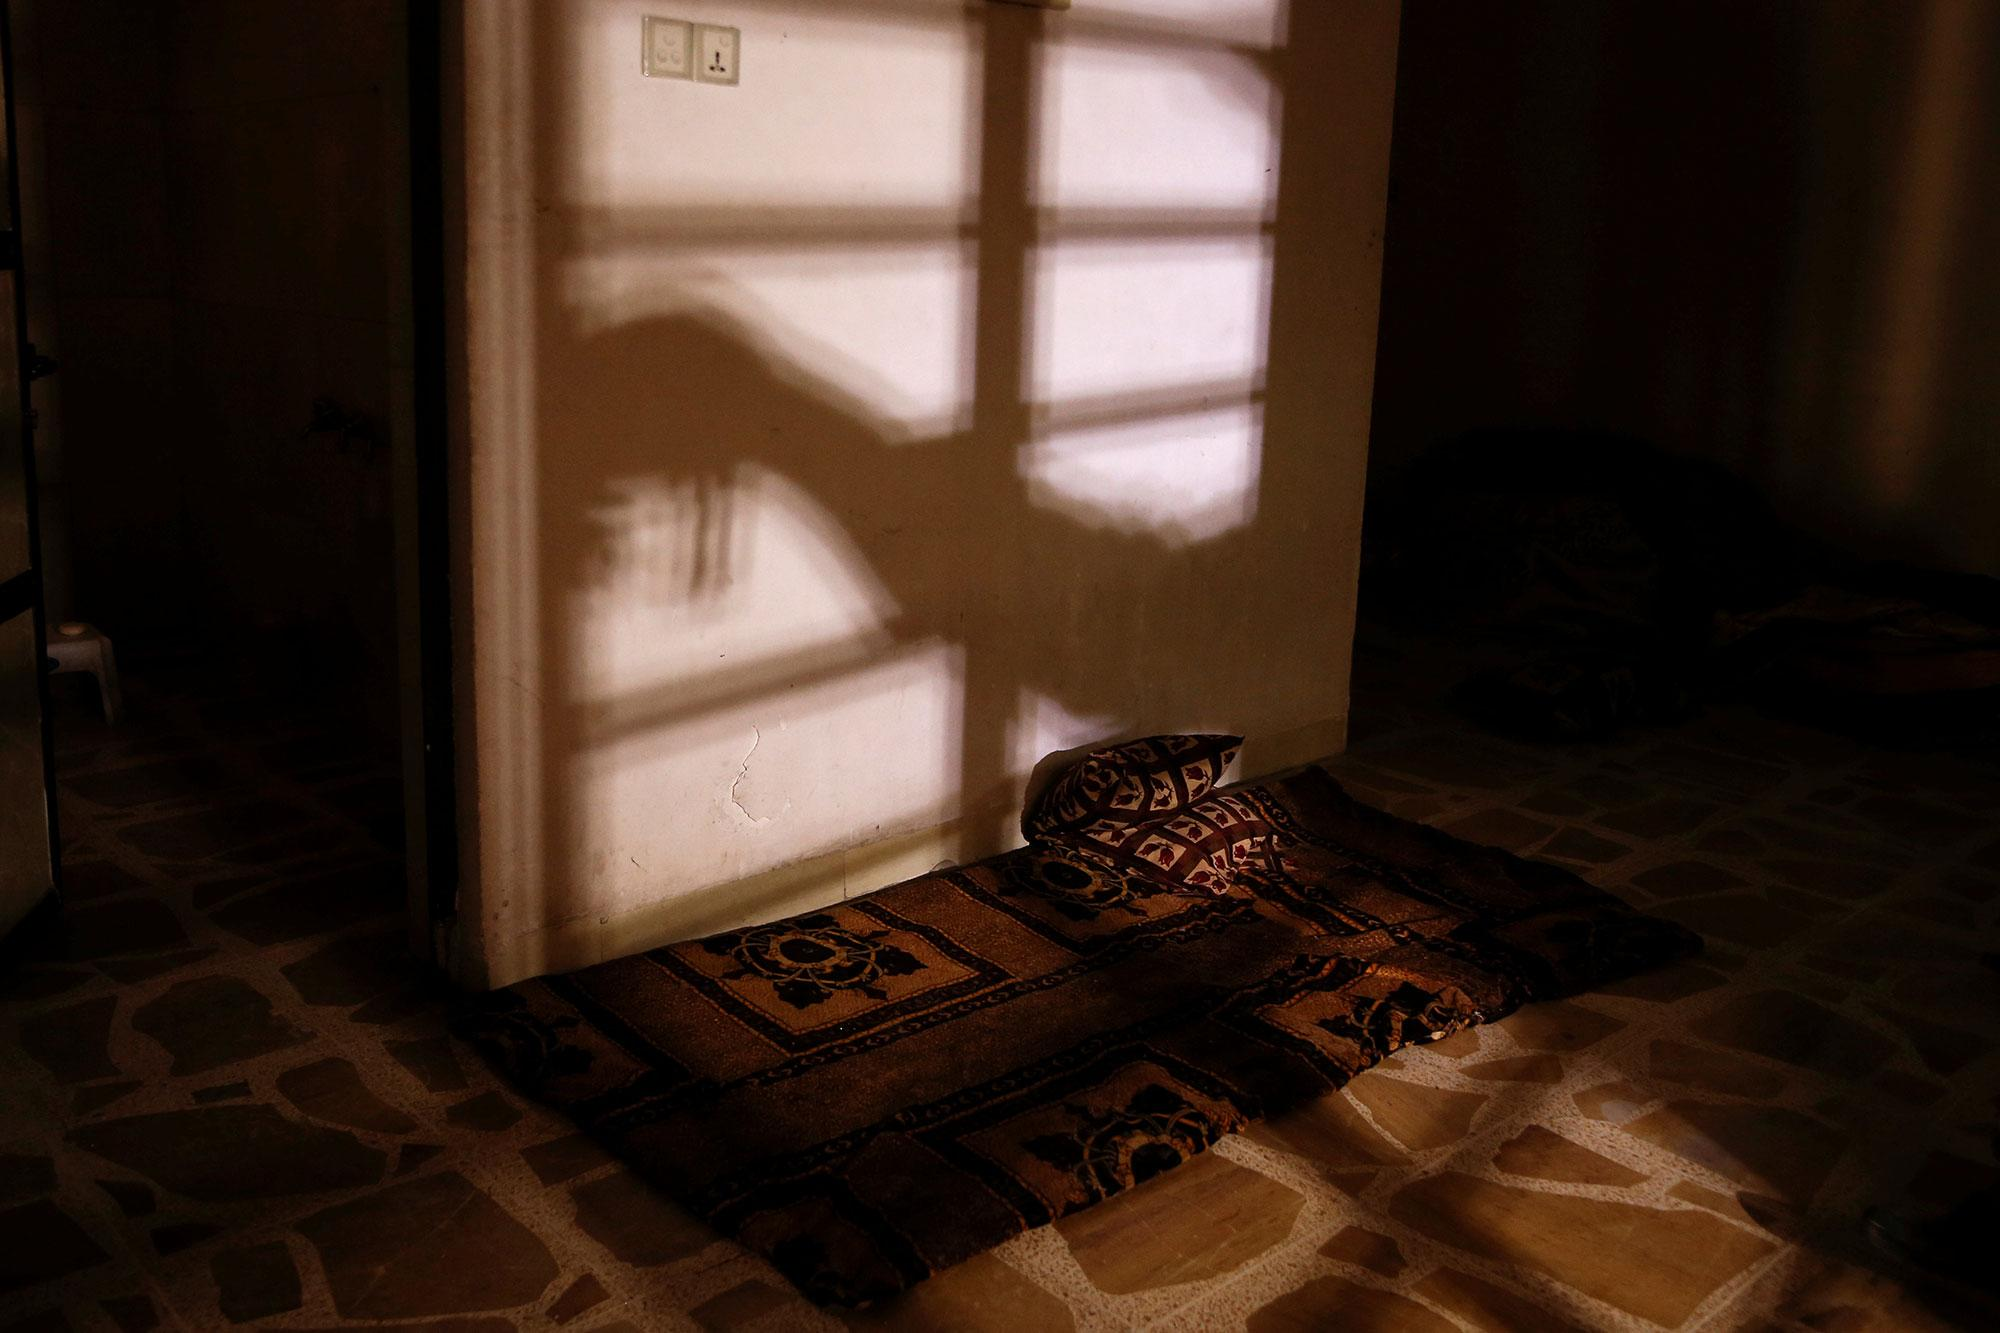 <p>The shadow of a member of the Iraqi Army's 9th Armoured Division is seen as he opens a steel gate to a room used as a cell for men, inside a compound used as a prison by Islamic State militants in the 17 Tamuz (July 17) district, in western Mosul, Iraq, June 6, 2017. (Alkis Konstantinidis/Reuters) </p>